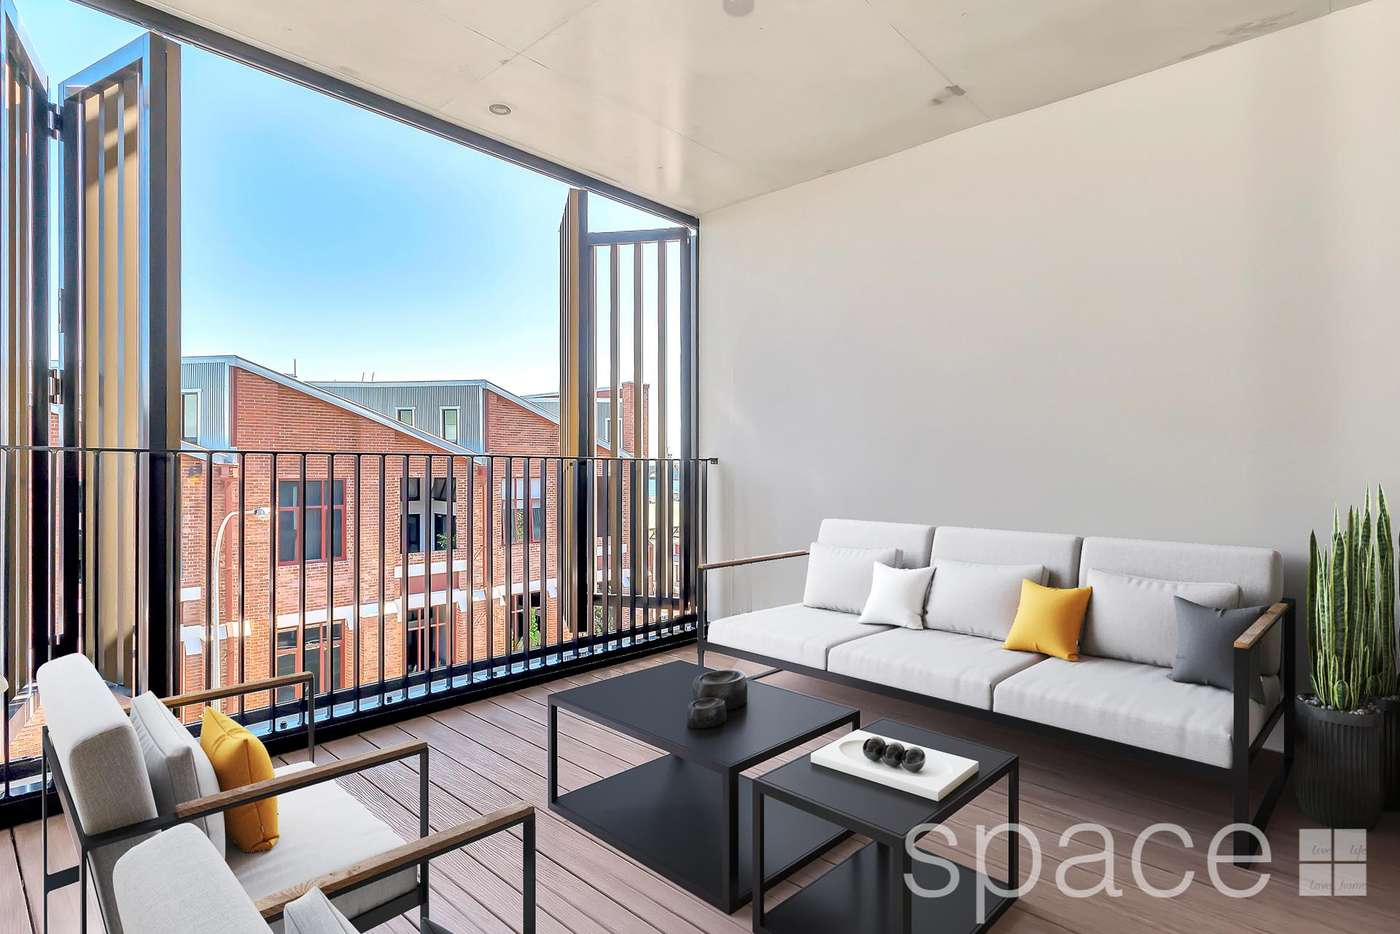 Main view of Homely apartment listing, 30/51 Queen Victoria Street, Fremantle WA 6160